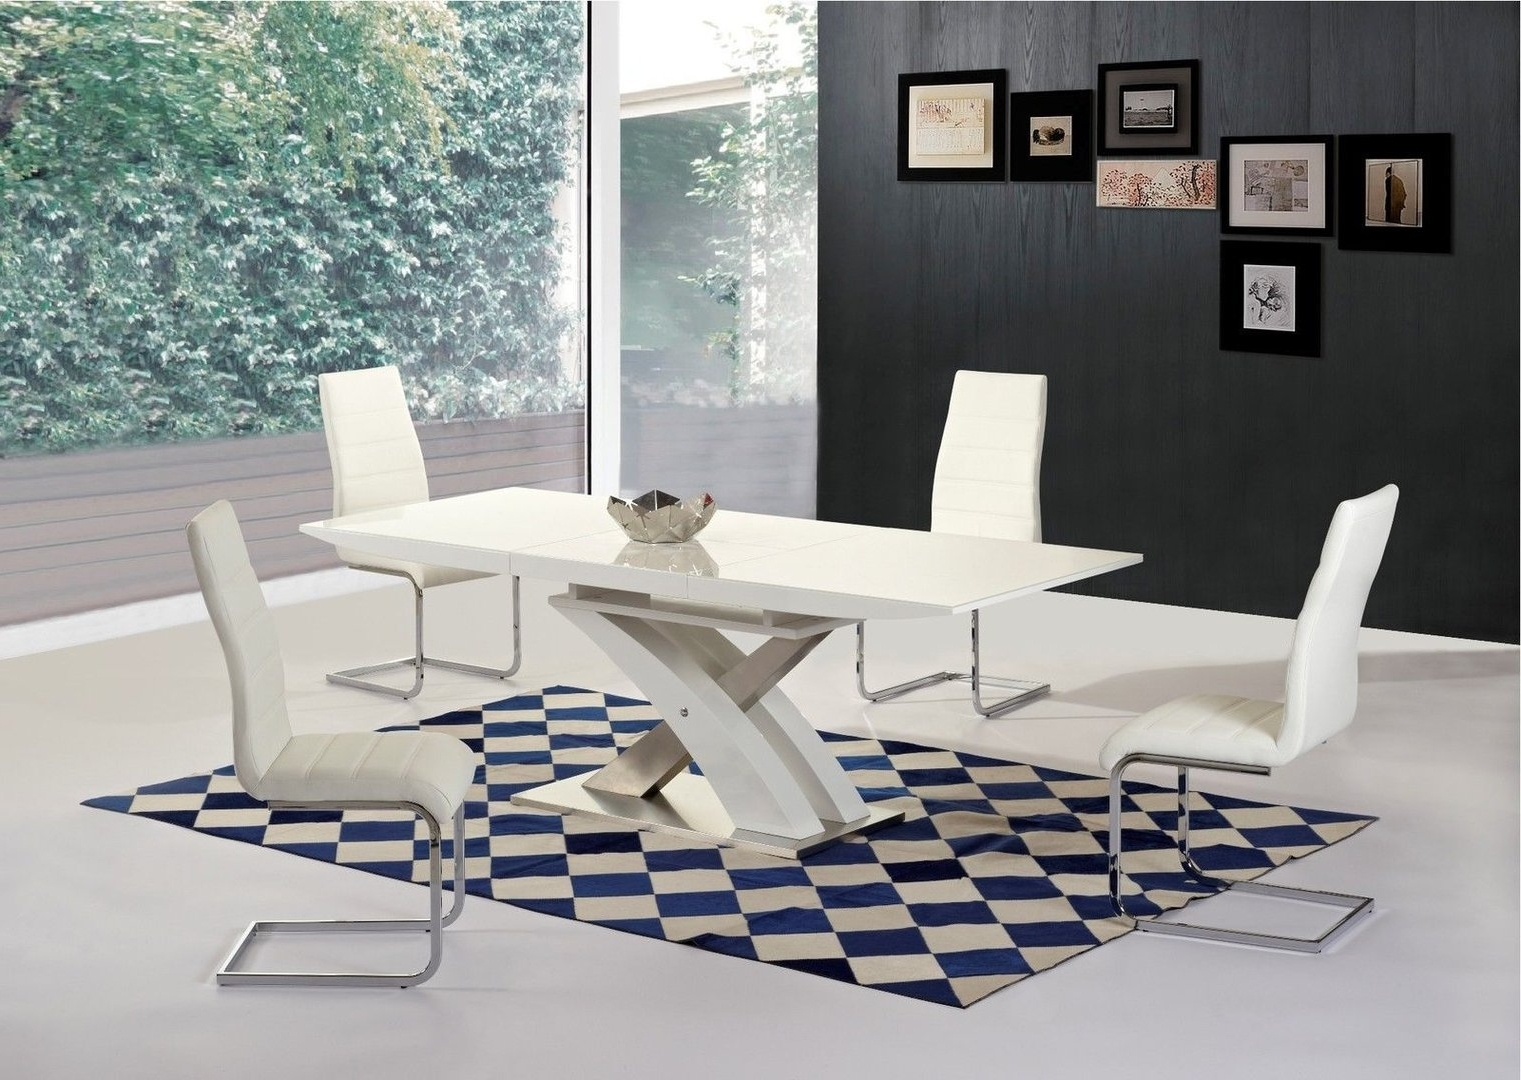 White Gloss Extendable Dining Tables Intended For Well Known White H Gloss Extending Glass Dining Table & 8 Chairs  Homegenies (View 6 of 25)